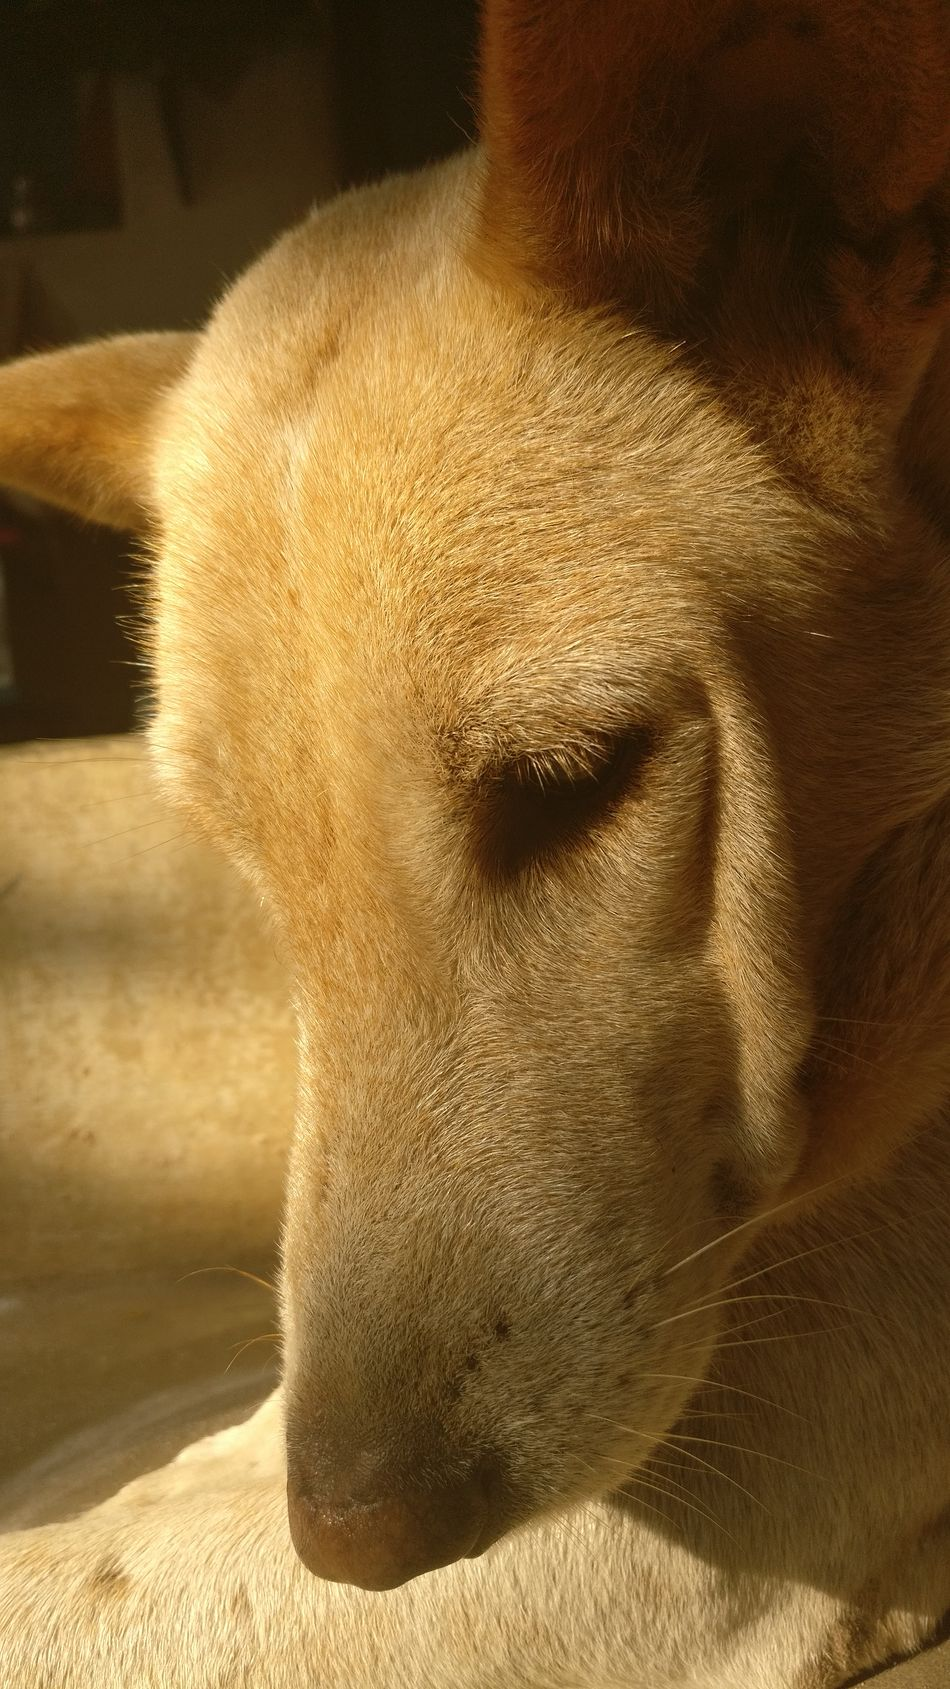 Dog Light And Shadow Detail Portrait Intriguing Personal Perspective Intelligence